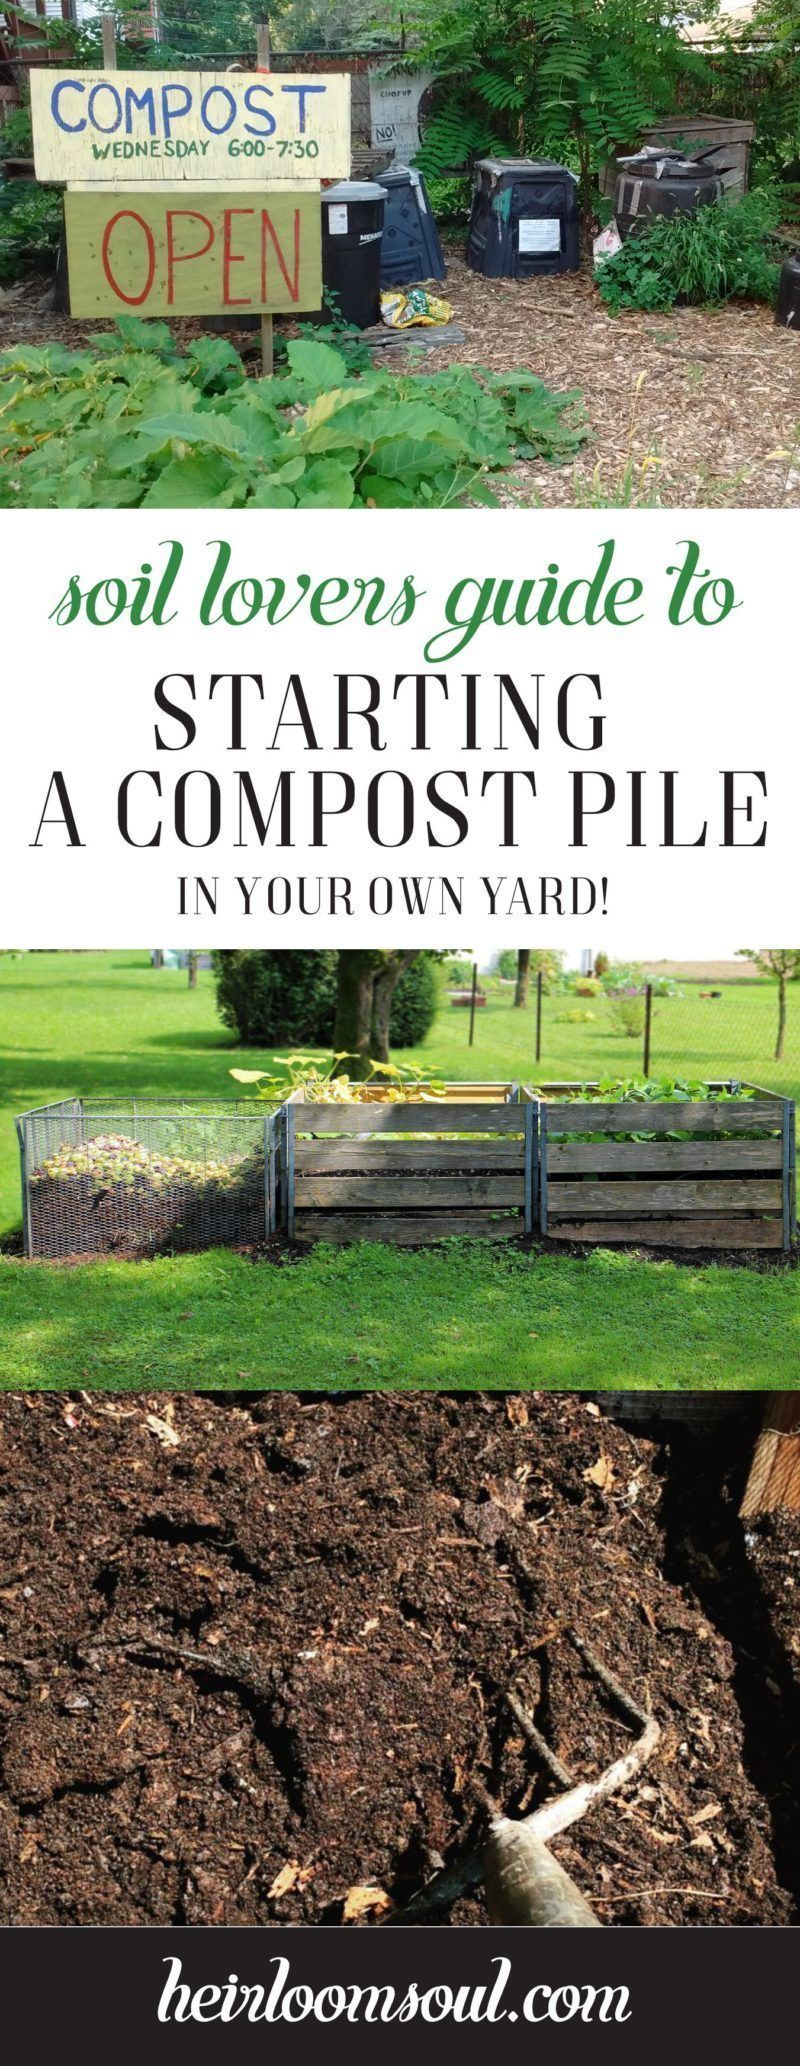 Hot Start a Compost Pile from Kitchen and Garden Scraps  Permaculture Gardening Techniques  Heirloom Soul  How to Start a Biodiverse Compost Pile in Your Yard  A StepbySt...